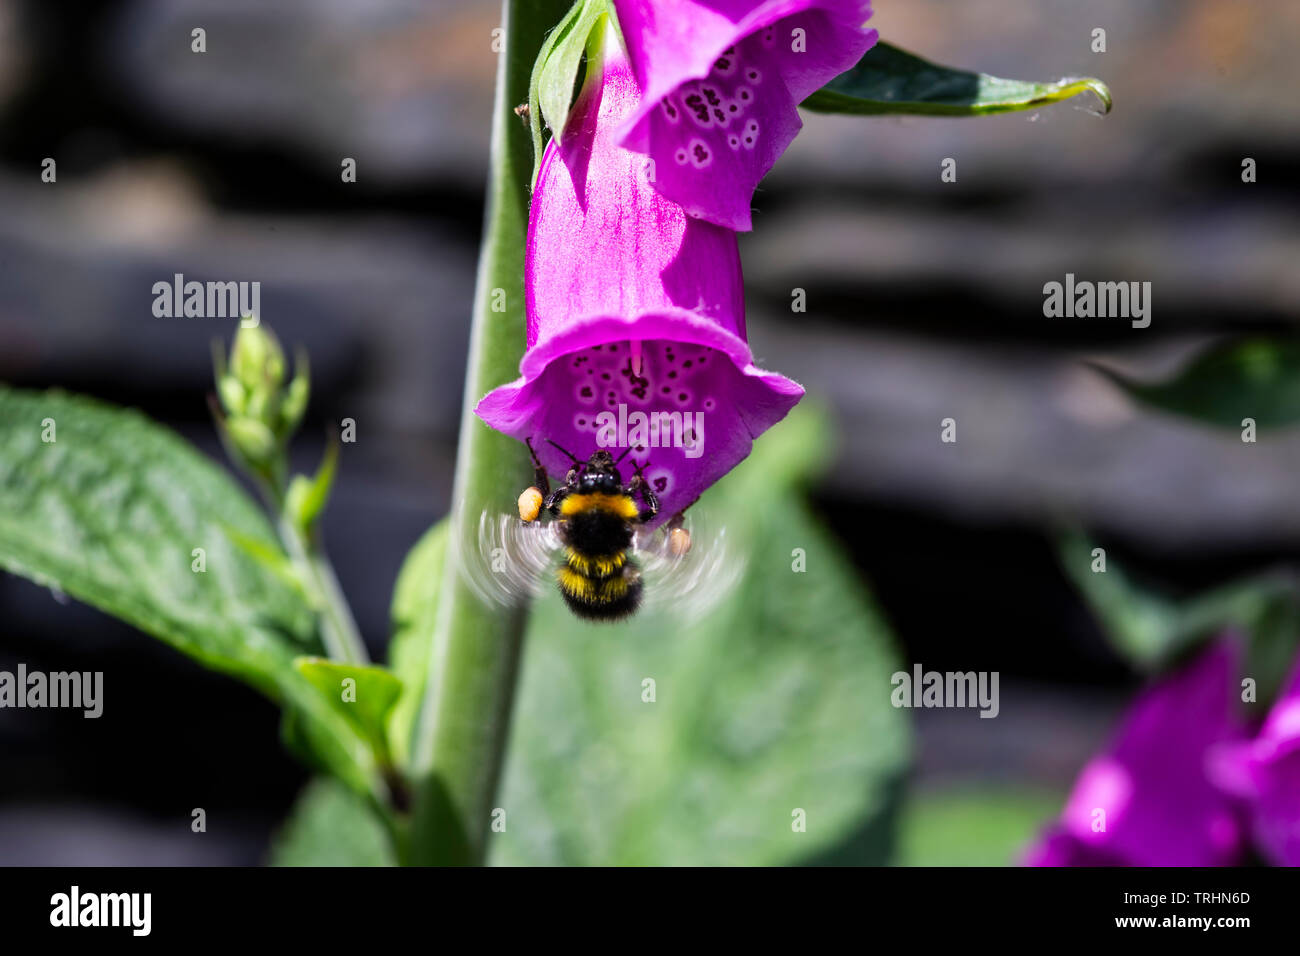 A Bumble bee with visible motion blur on the wings alighting on a common foxglove  Digitalis purpurea enabling pollination of plants Stock Photo